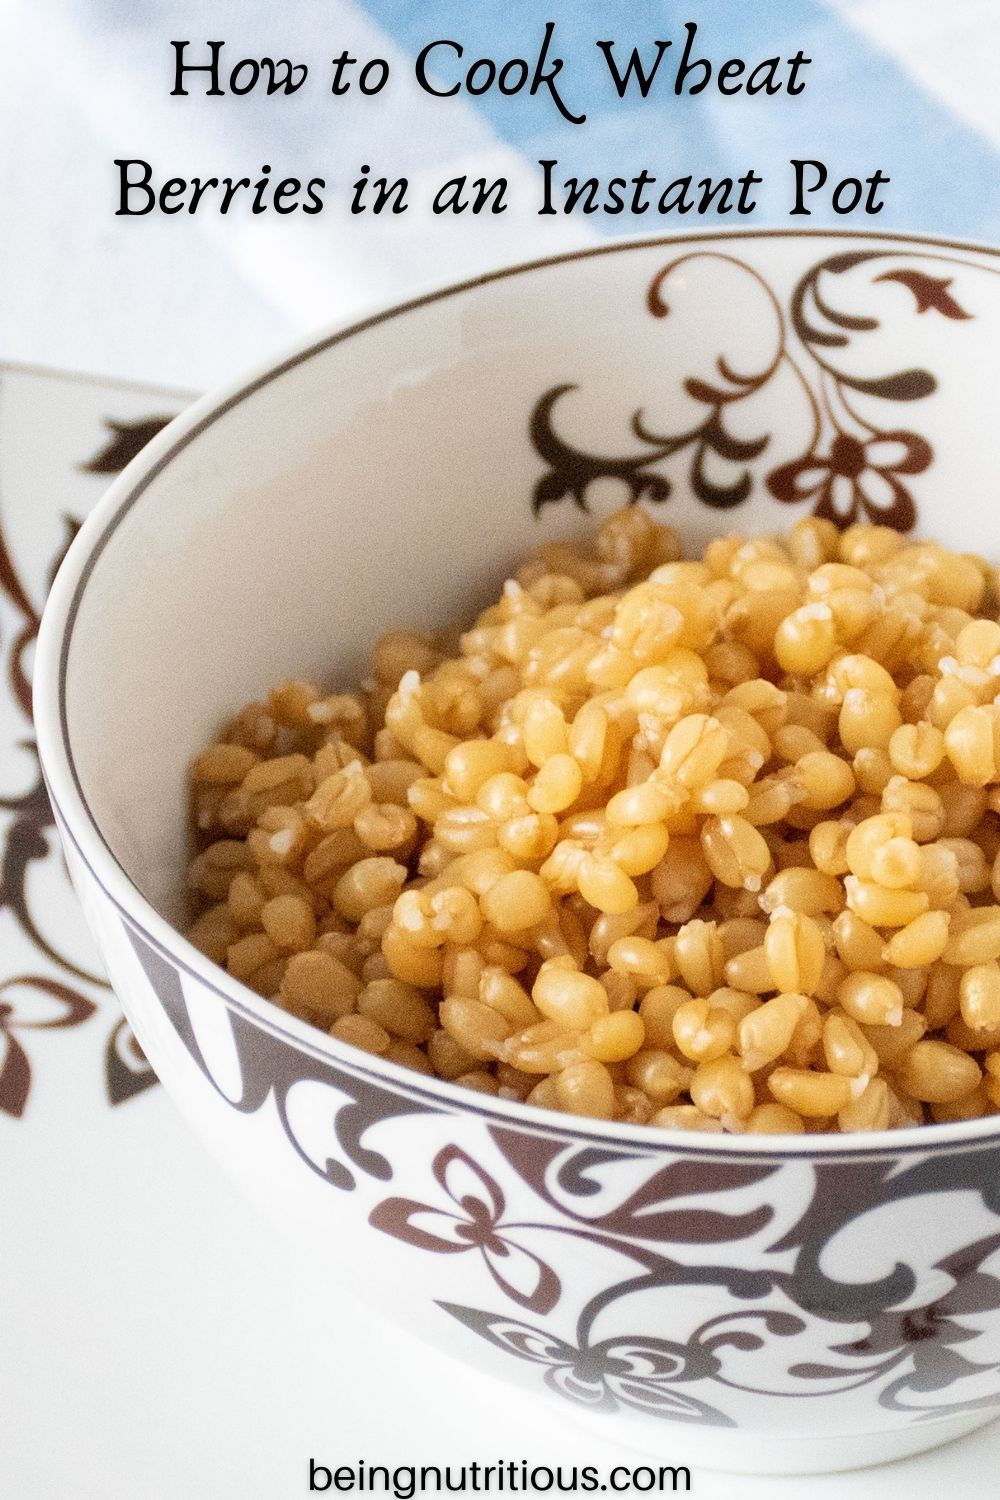 Bowl of cooked wheat berries. Text overlay: How to Cook Wheat Berries in an Instant Pot.